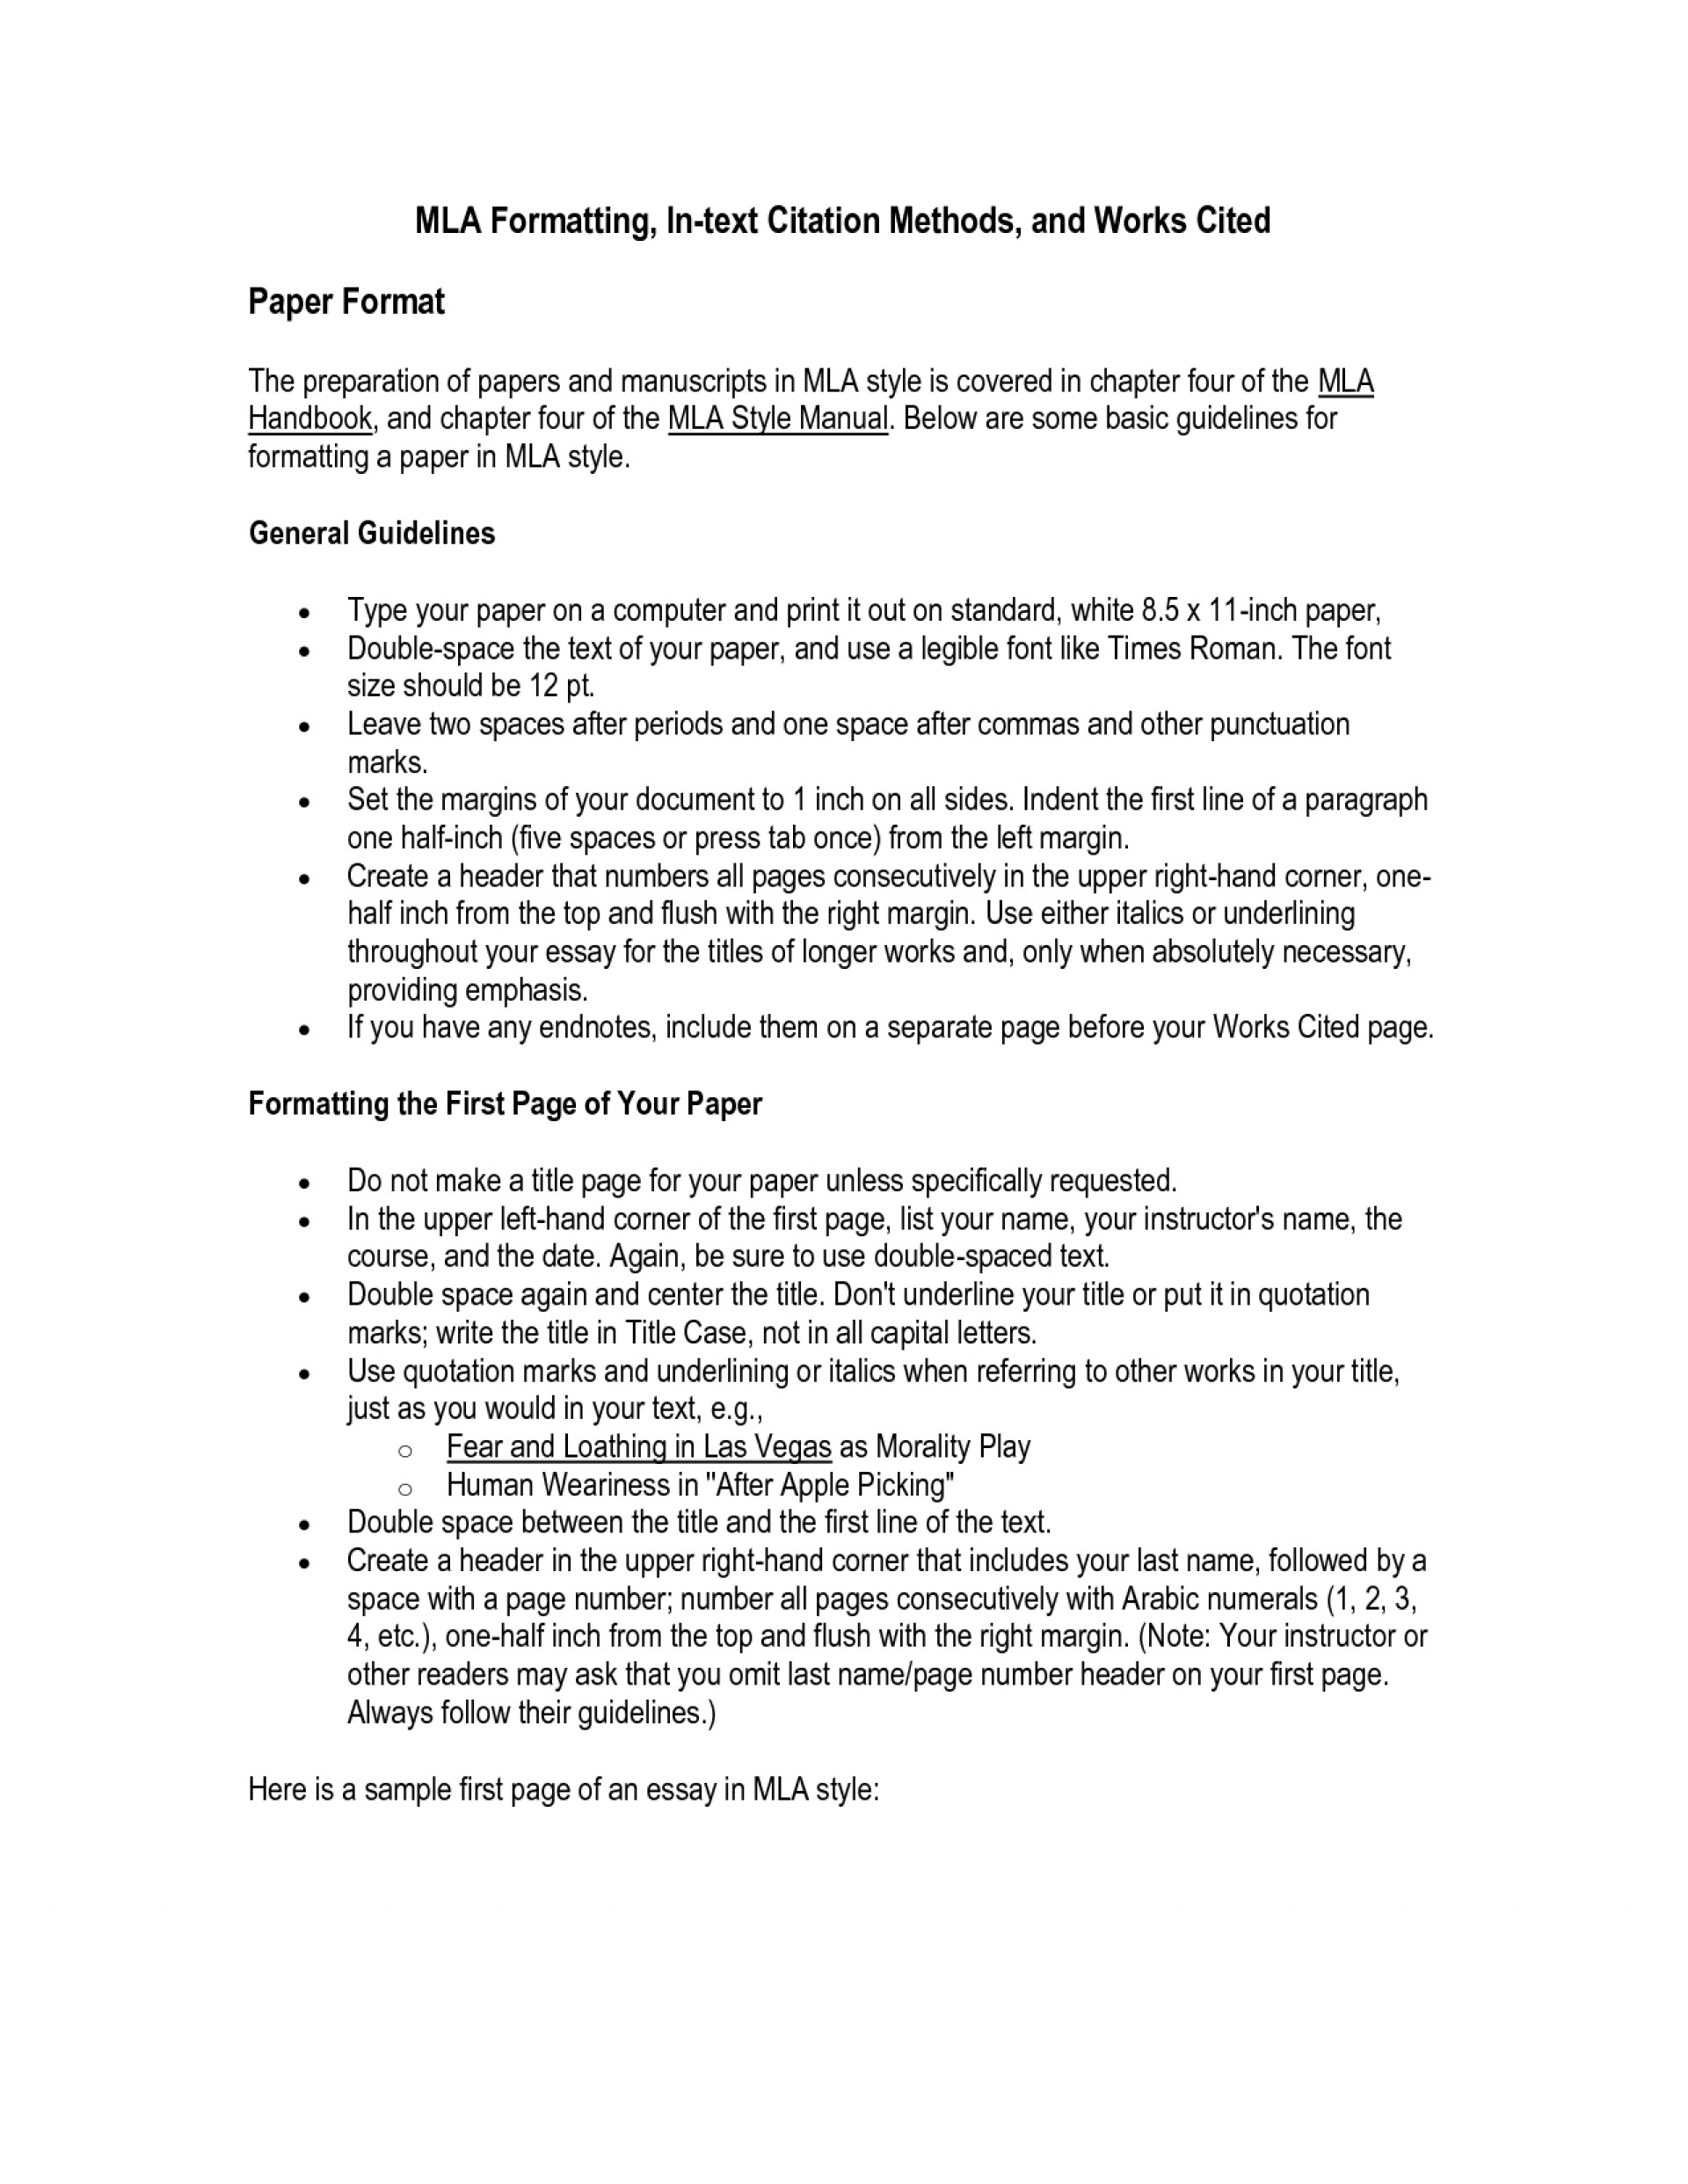 014 How To Cite An Essay In Mla Format Work Cited Example Nardellidesign X Unusual A Paper Research Papers 8 1920